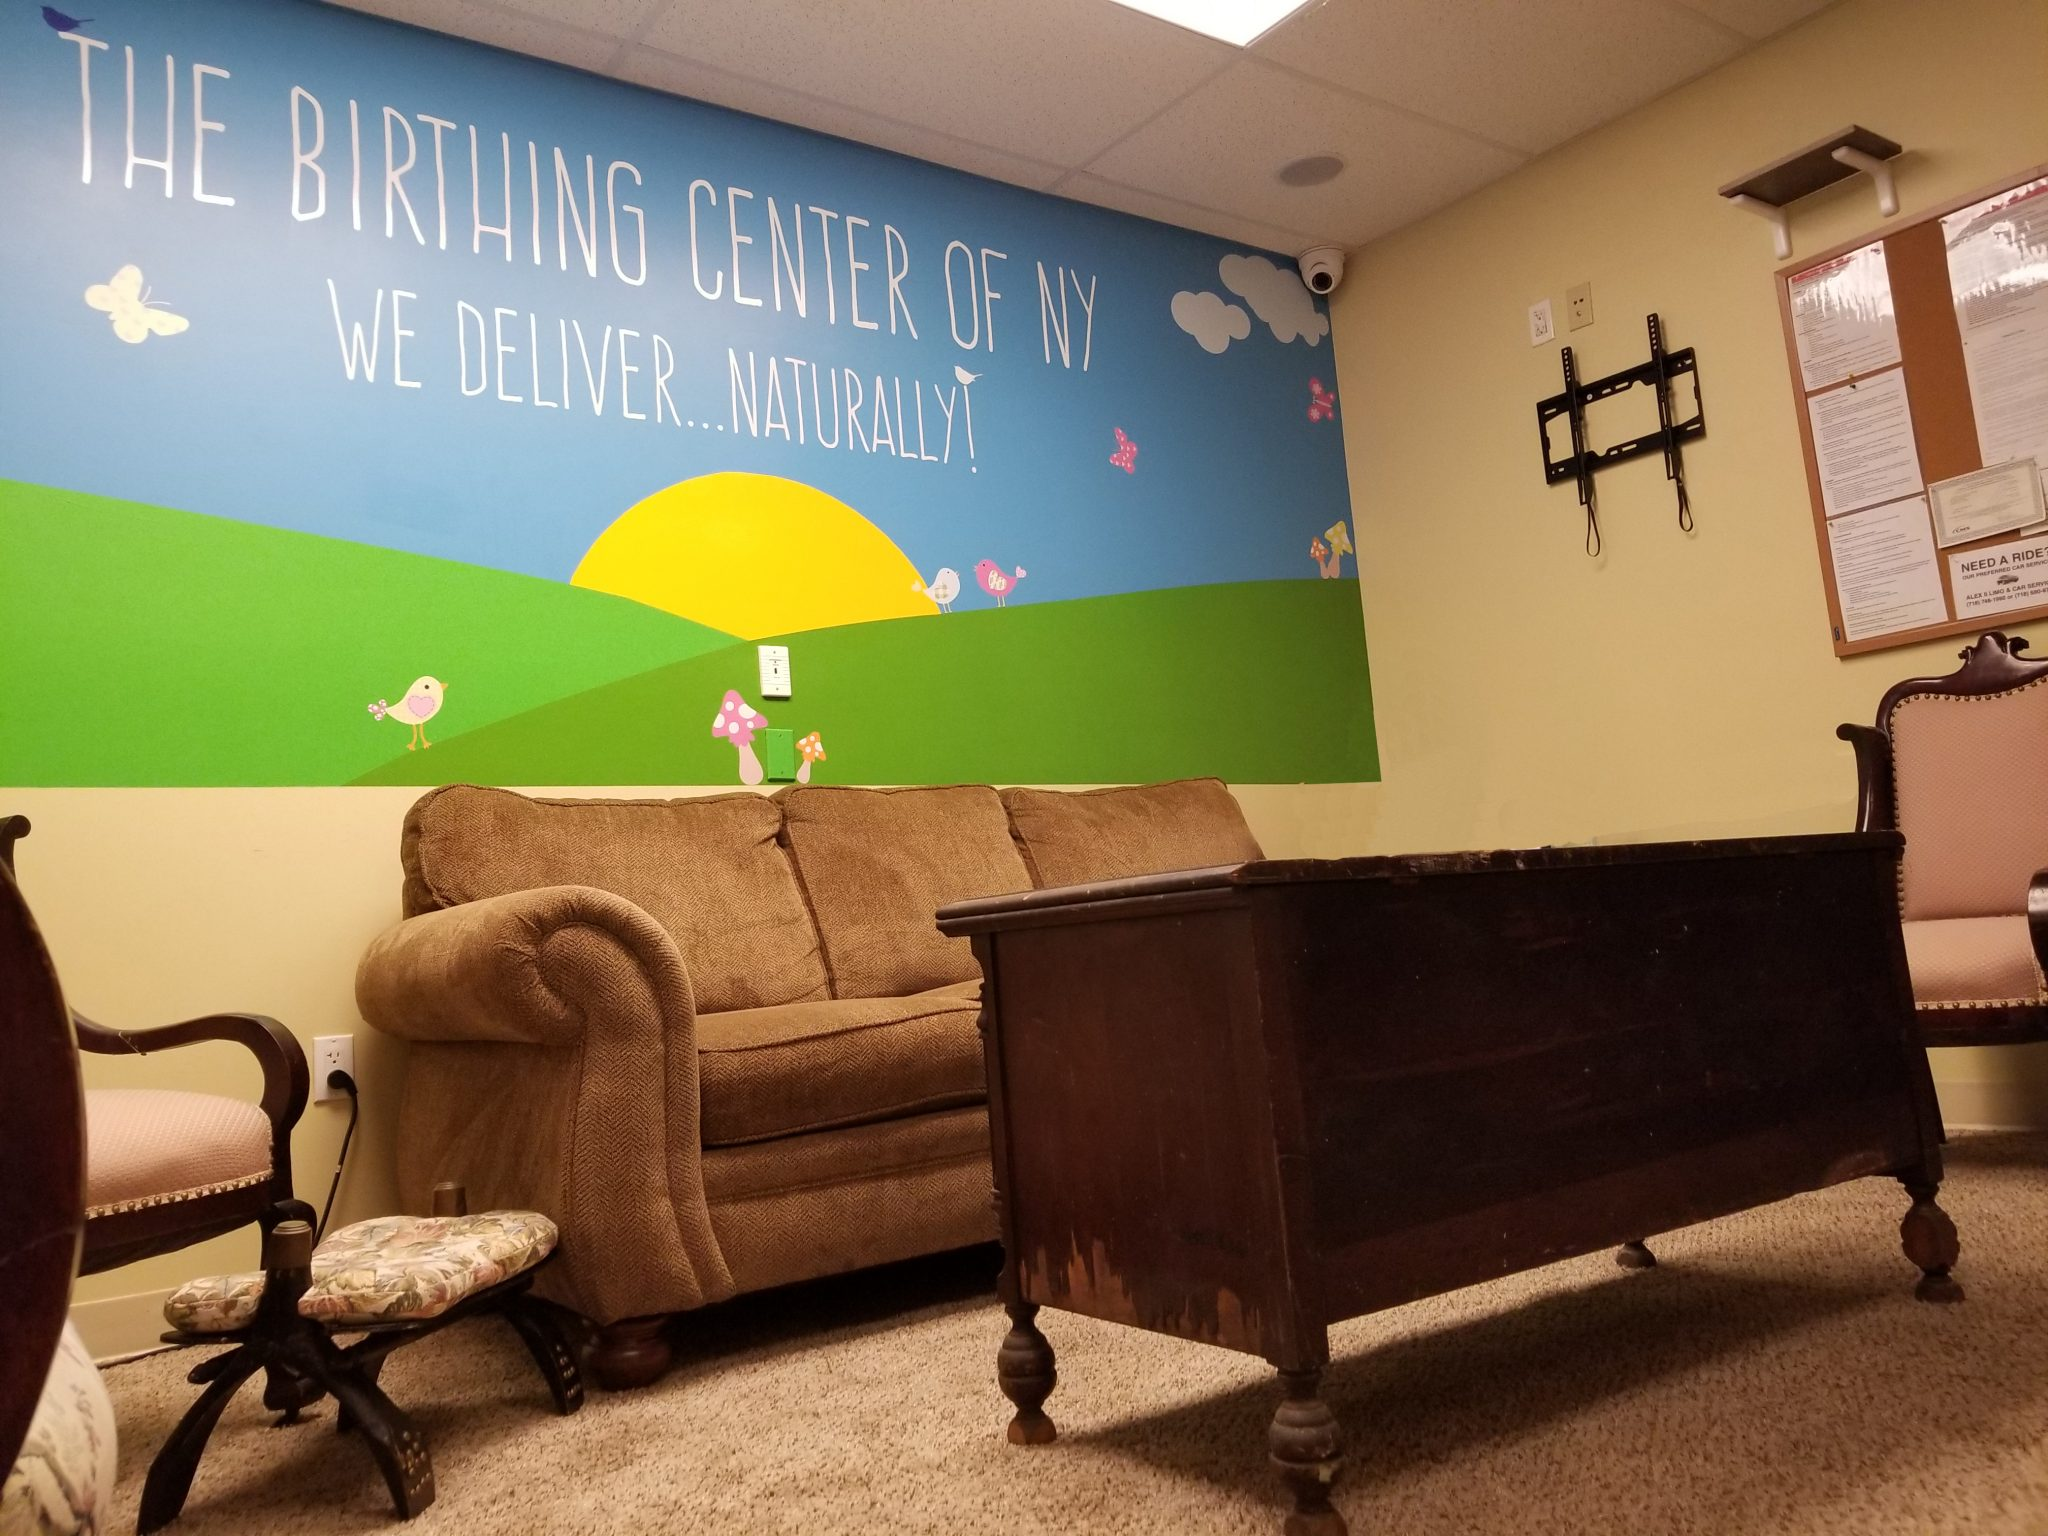 Facility Tour - Birthing Center of New York